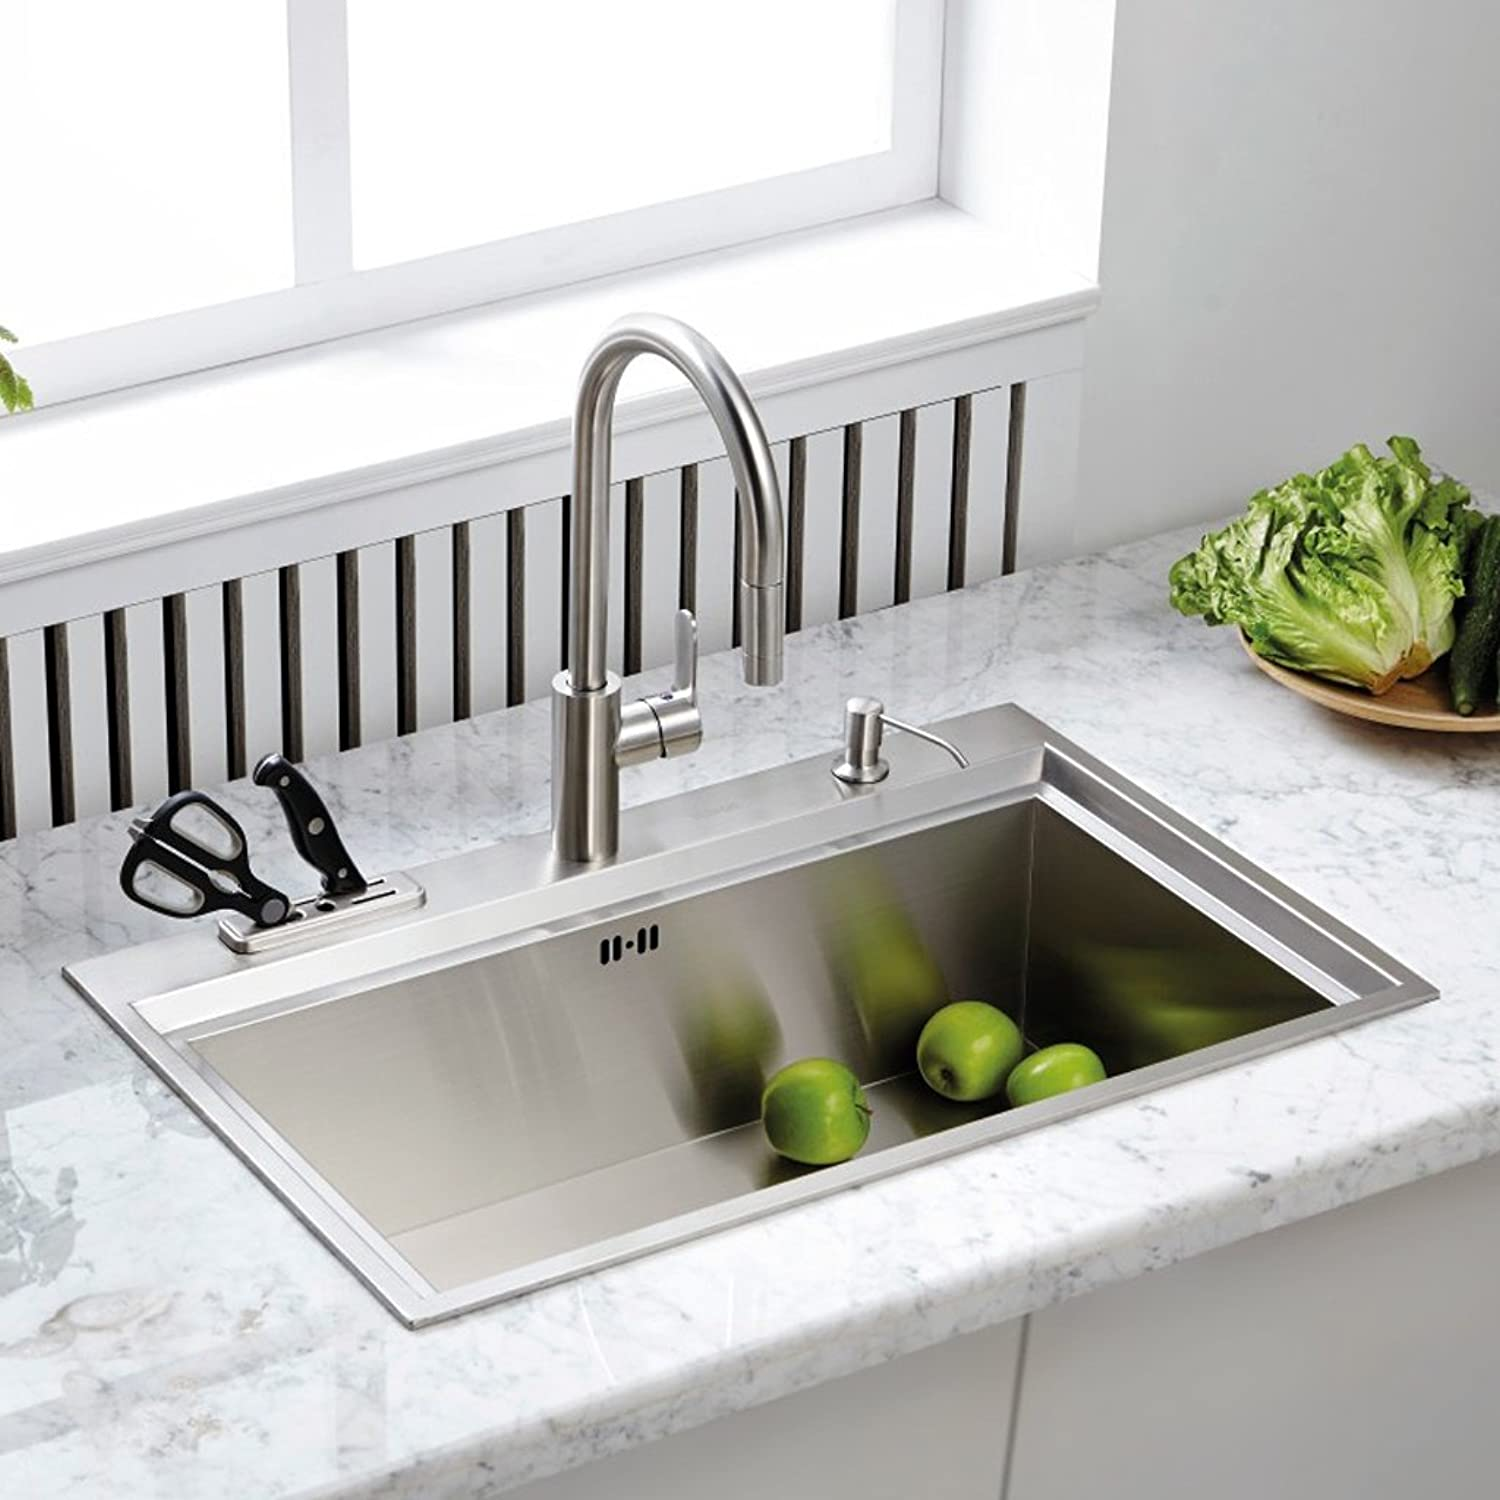 Sun LL Kitchen Sink Vegetable Basin Pulling Faucet Hot And Cold Water 304 Stainless Steel